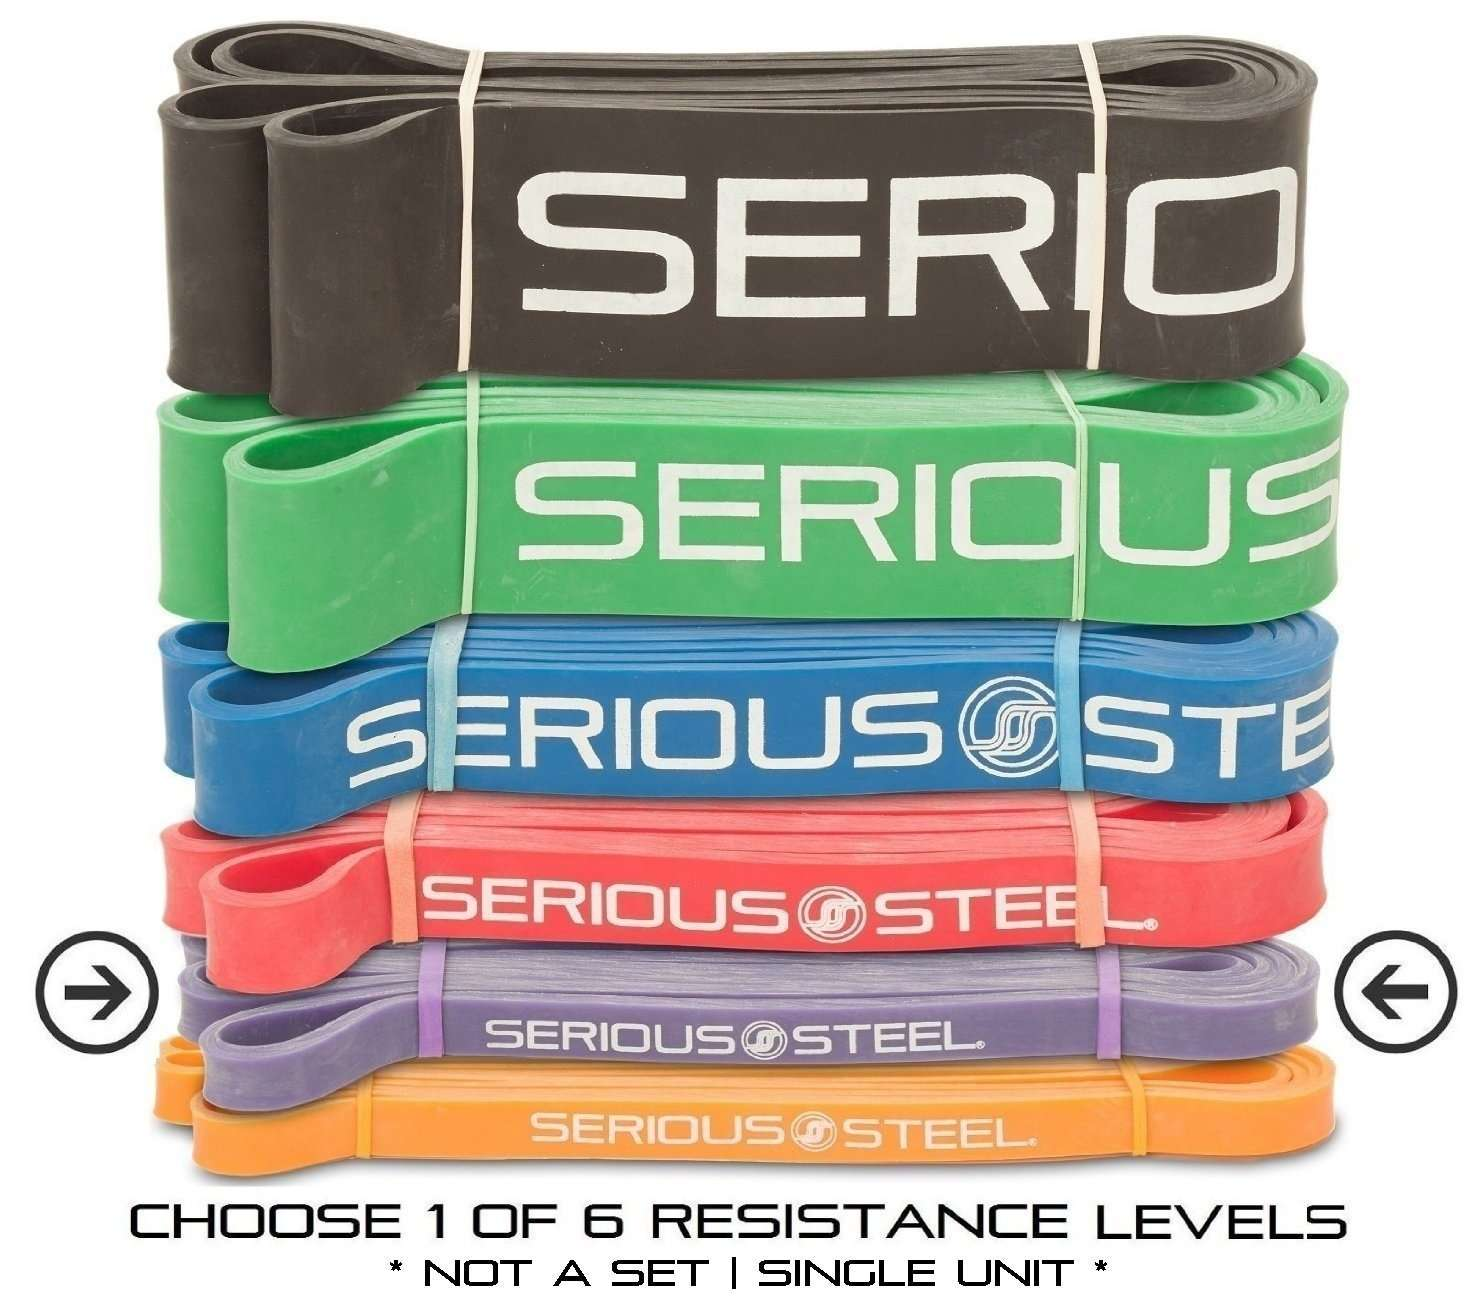 Best Resistance Band out there - Assisted Pull-Up, Resistance & Stretch Band